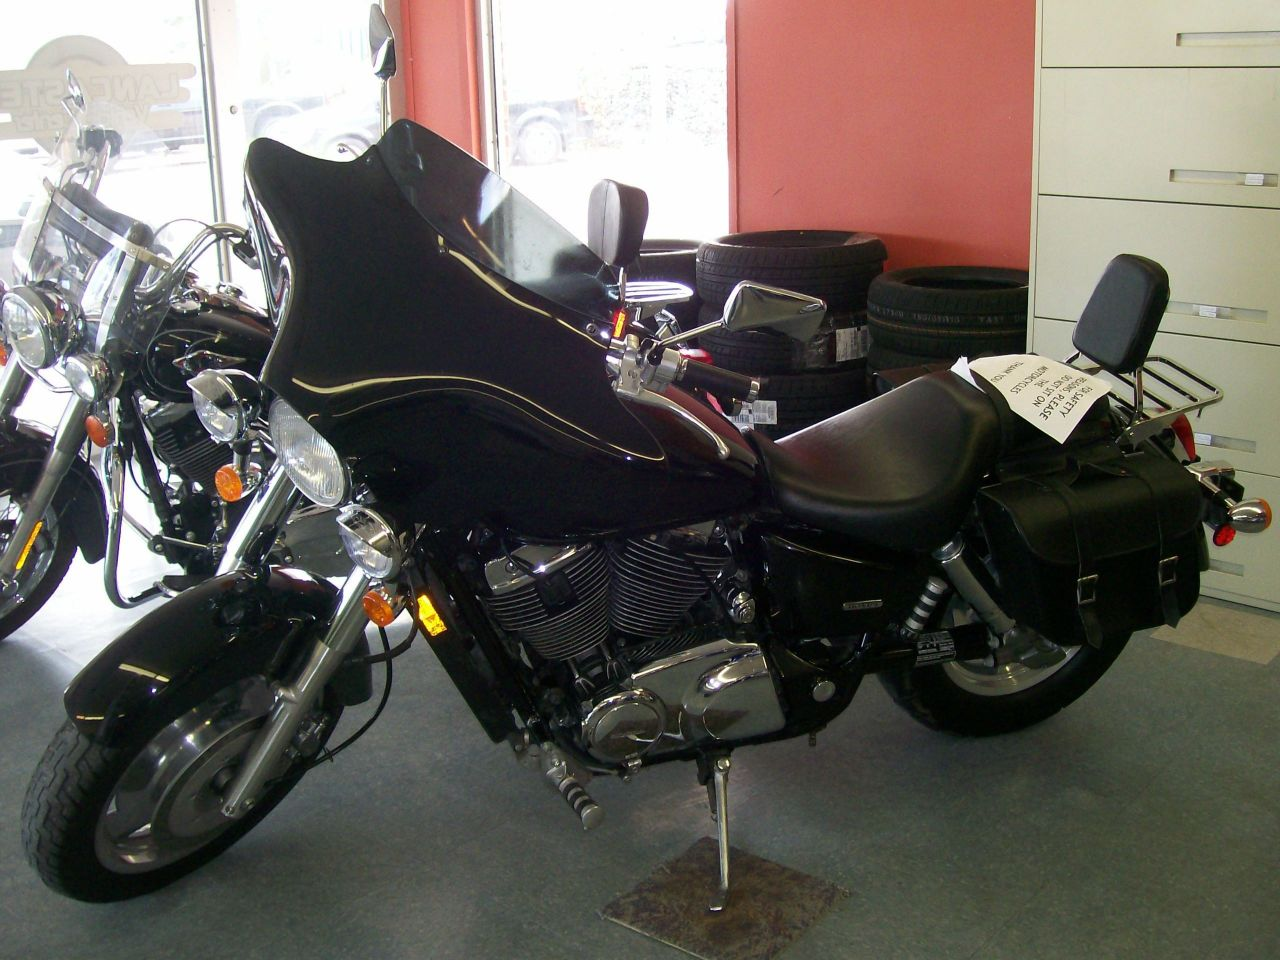 2006 Honda Shadow 1100 Sabre